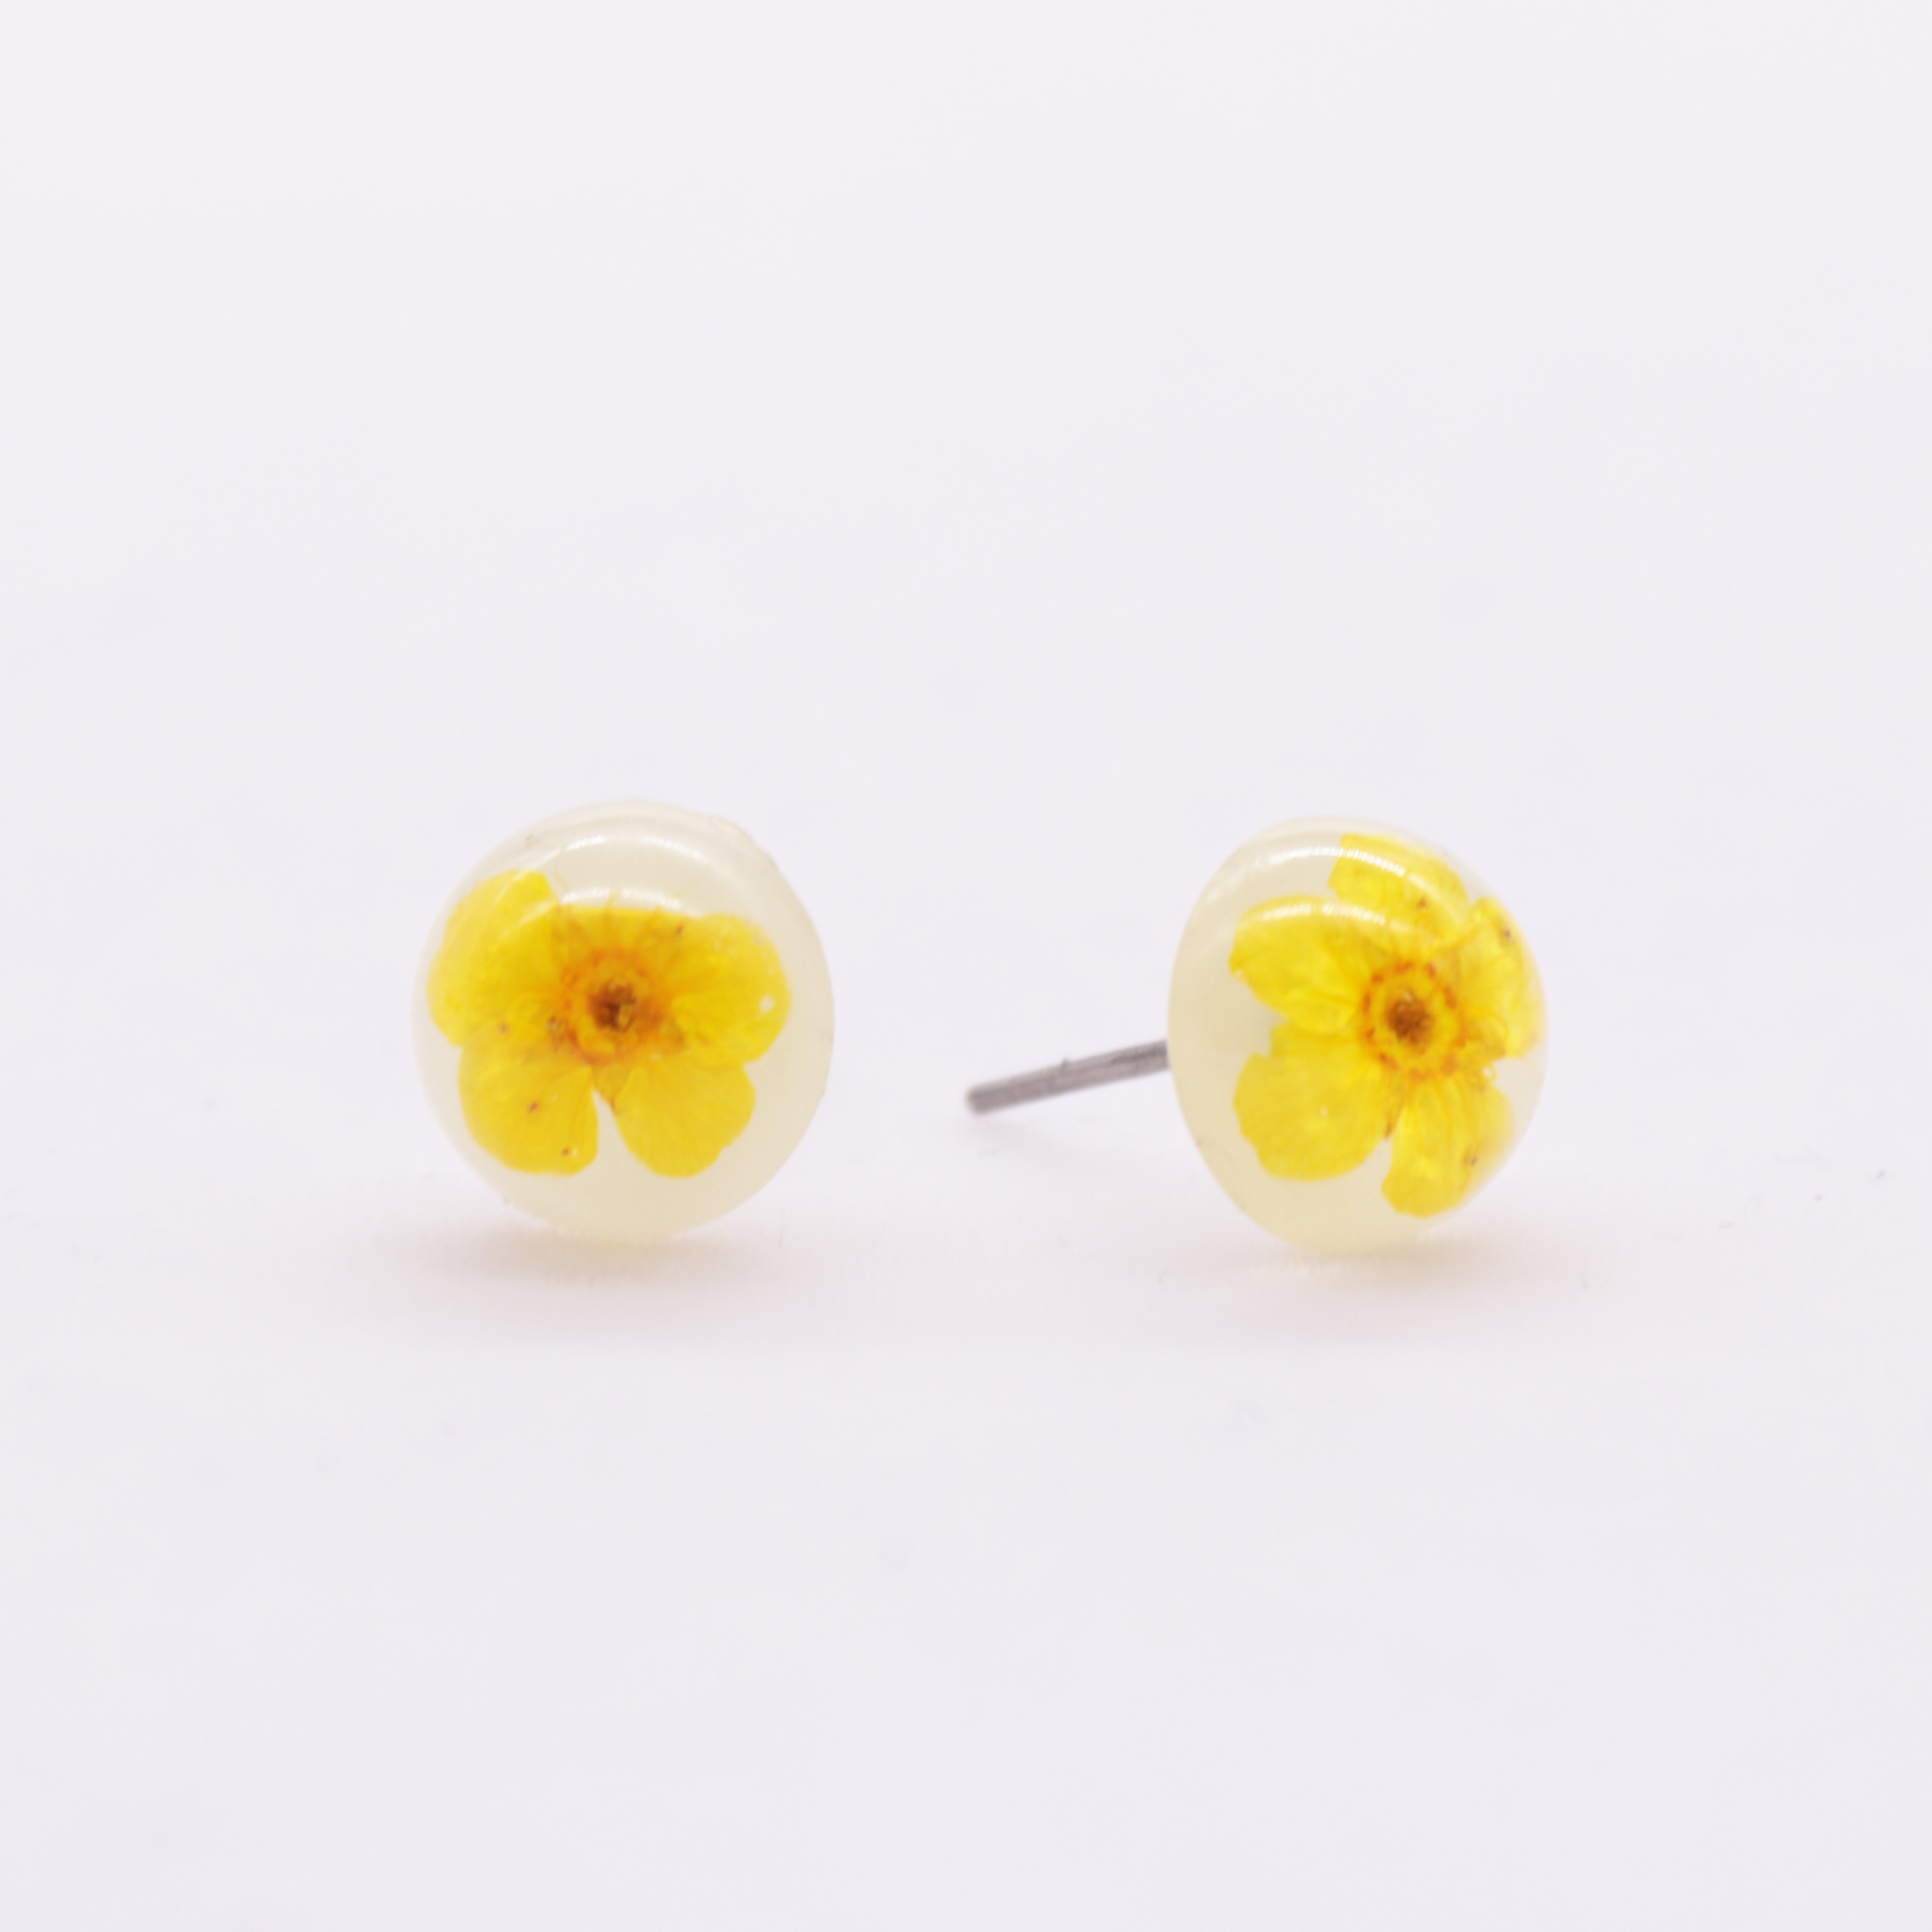 Fashion 2018 Yellow Pressed Flower Piercing Earrings Luminous Studs Ear Stud Fashionable Design Boys Mens Earring